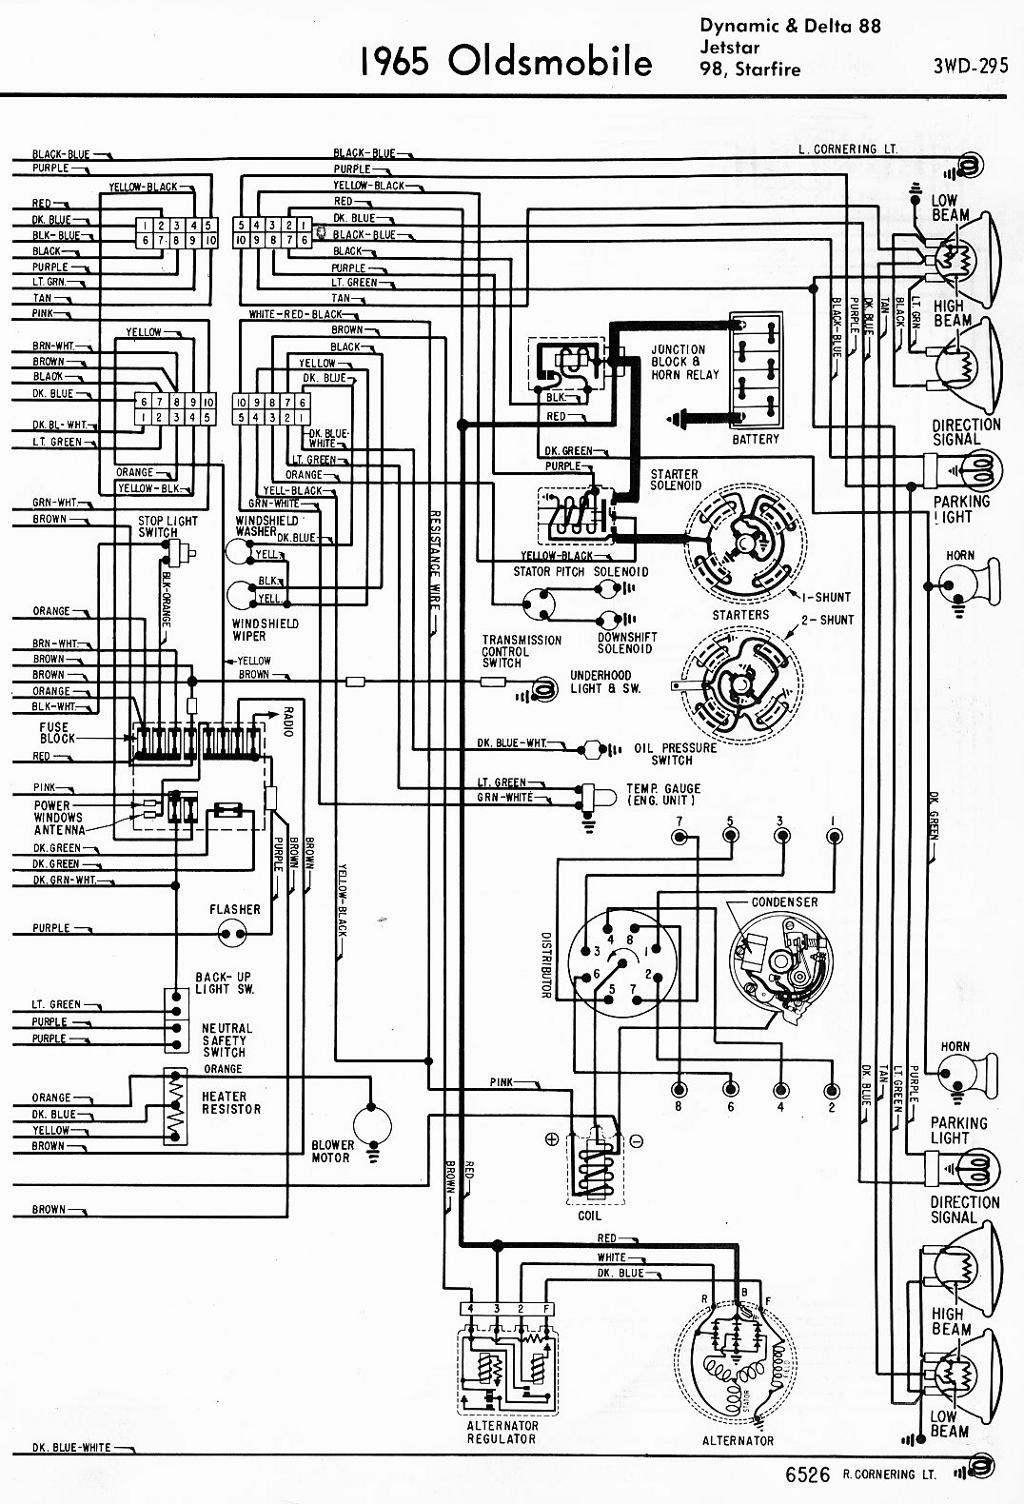 88 Land Rover Wiring Diagrams Free Download Diagram Schematic Moen Ts546orb Parts List And Ereplacementpartscom Oldsmobile Car Manuals Pdf Fault Codes Rh Automotive Net